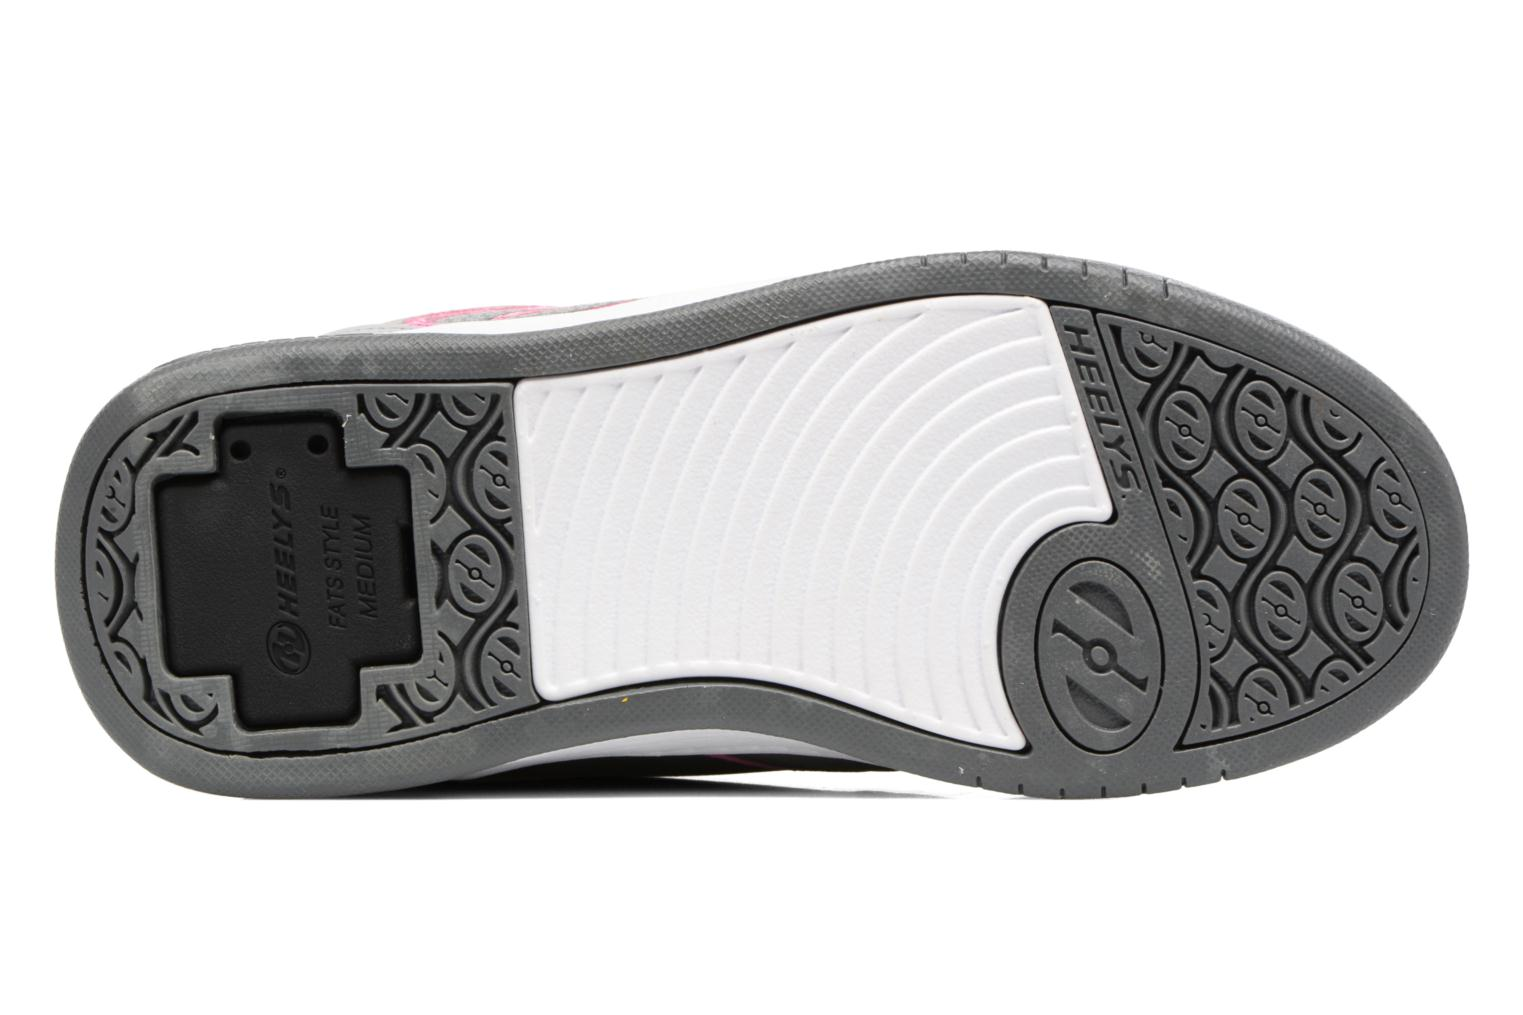 Propel 2.0 Charcoal/Grey/Pink